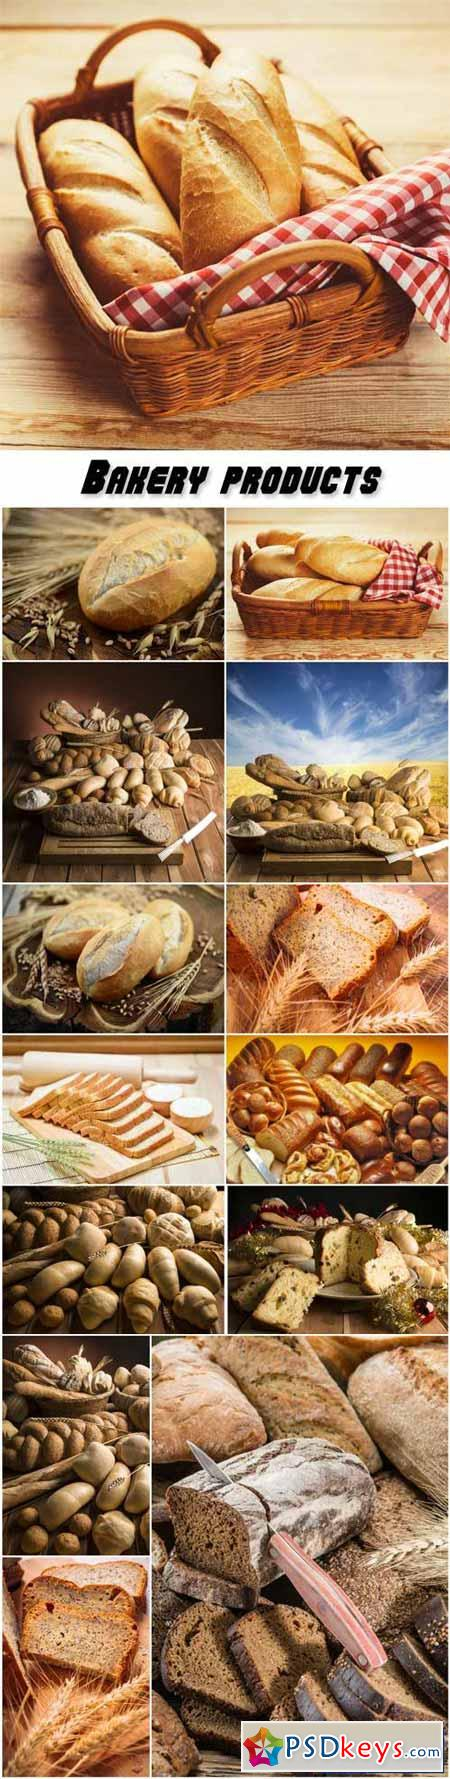 Bakery products, bread in a basket